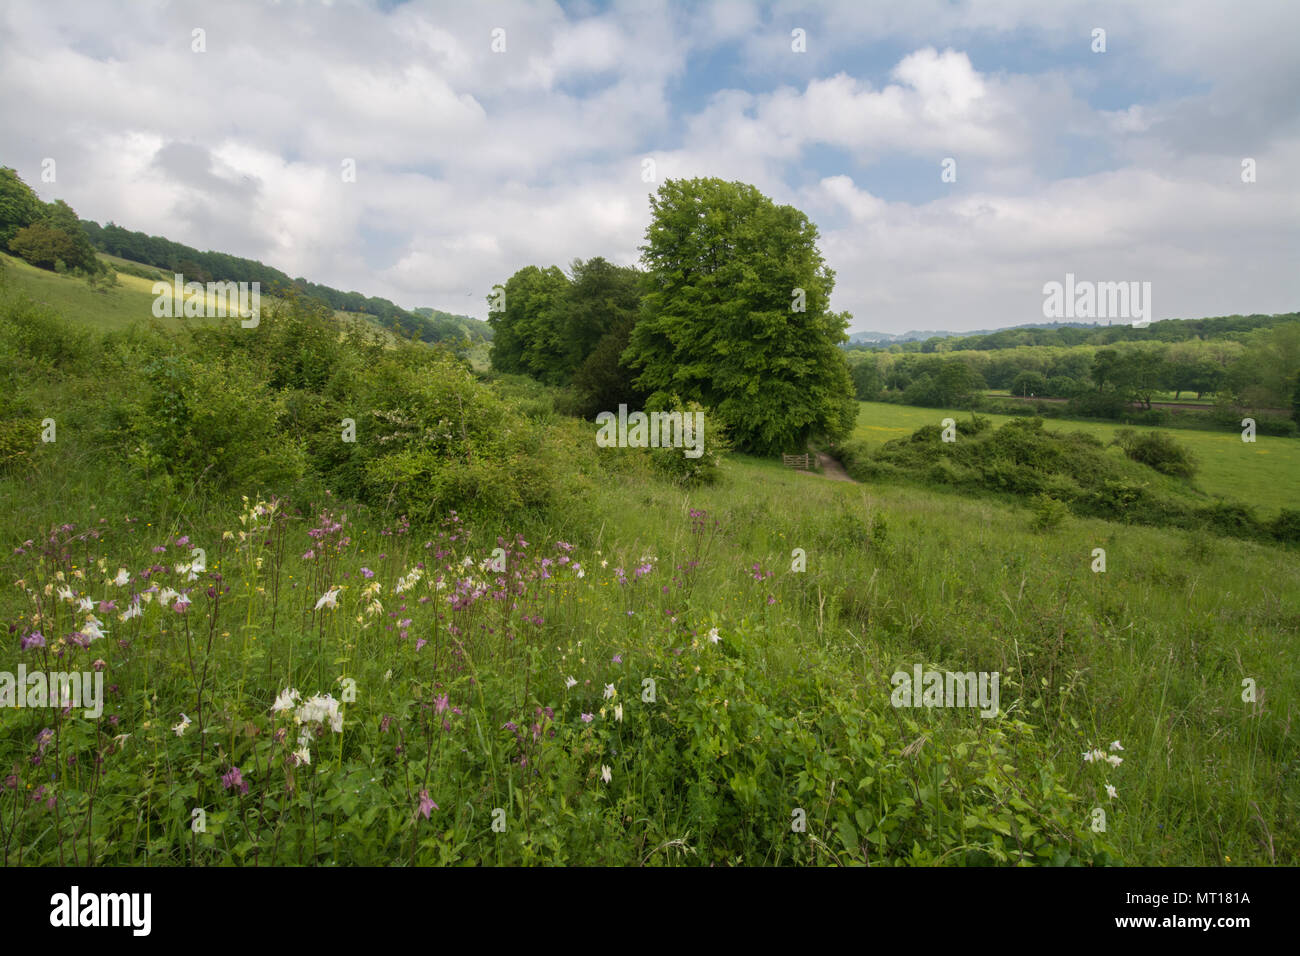 Chalk downland landscape in late spring at Denbies Hillside, Ranmore Common, in the North Downs AONB, Surrey, UK - Stock Image